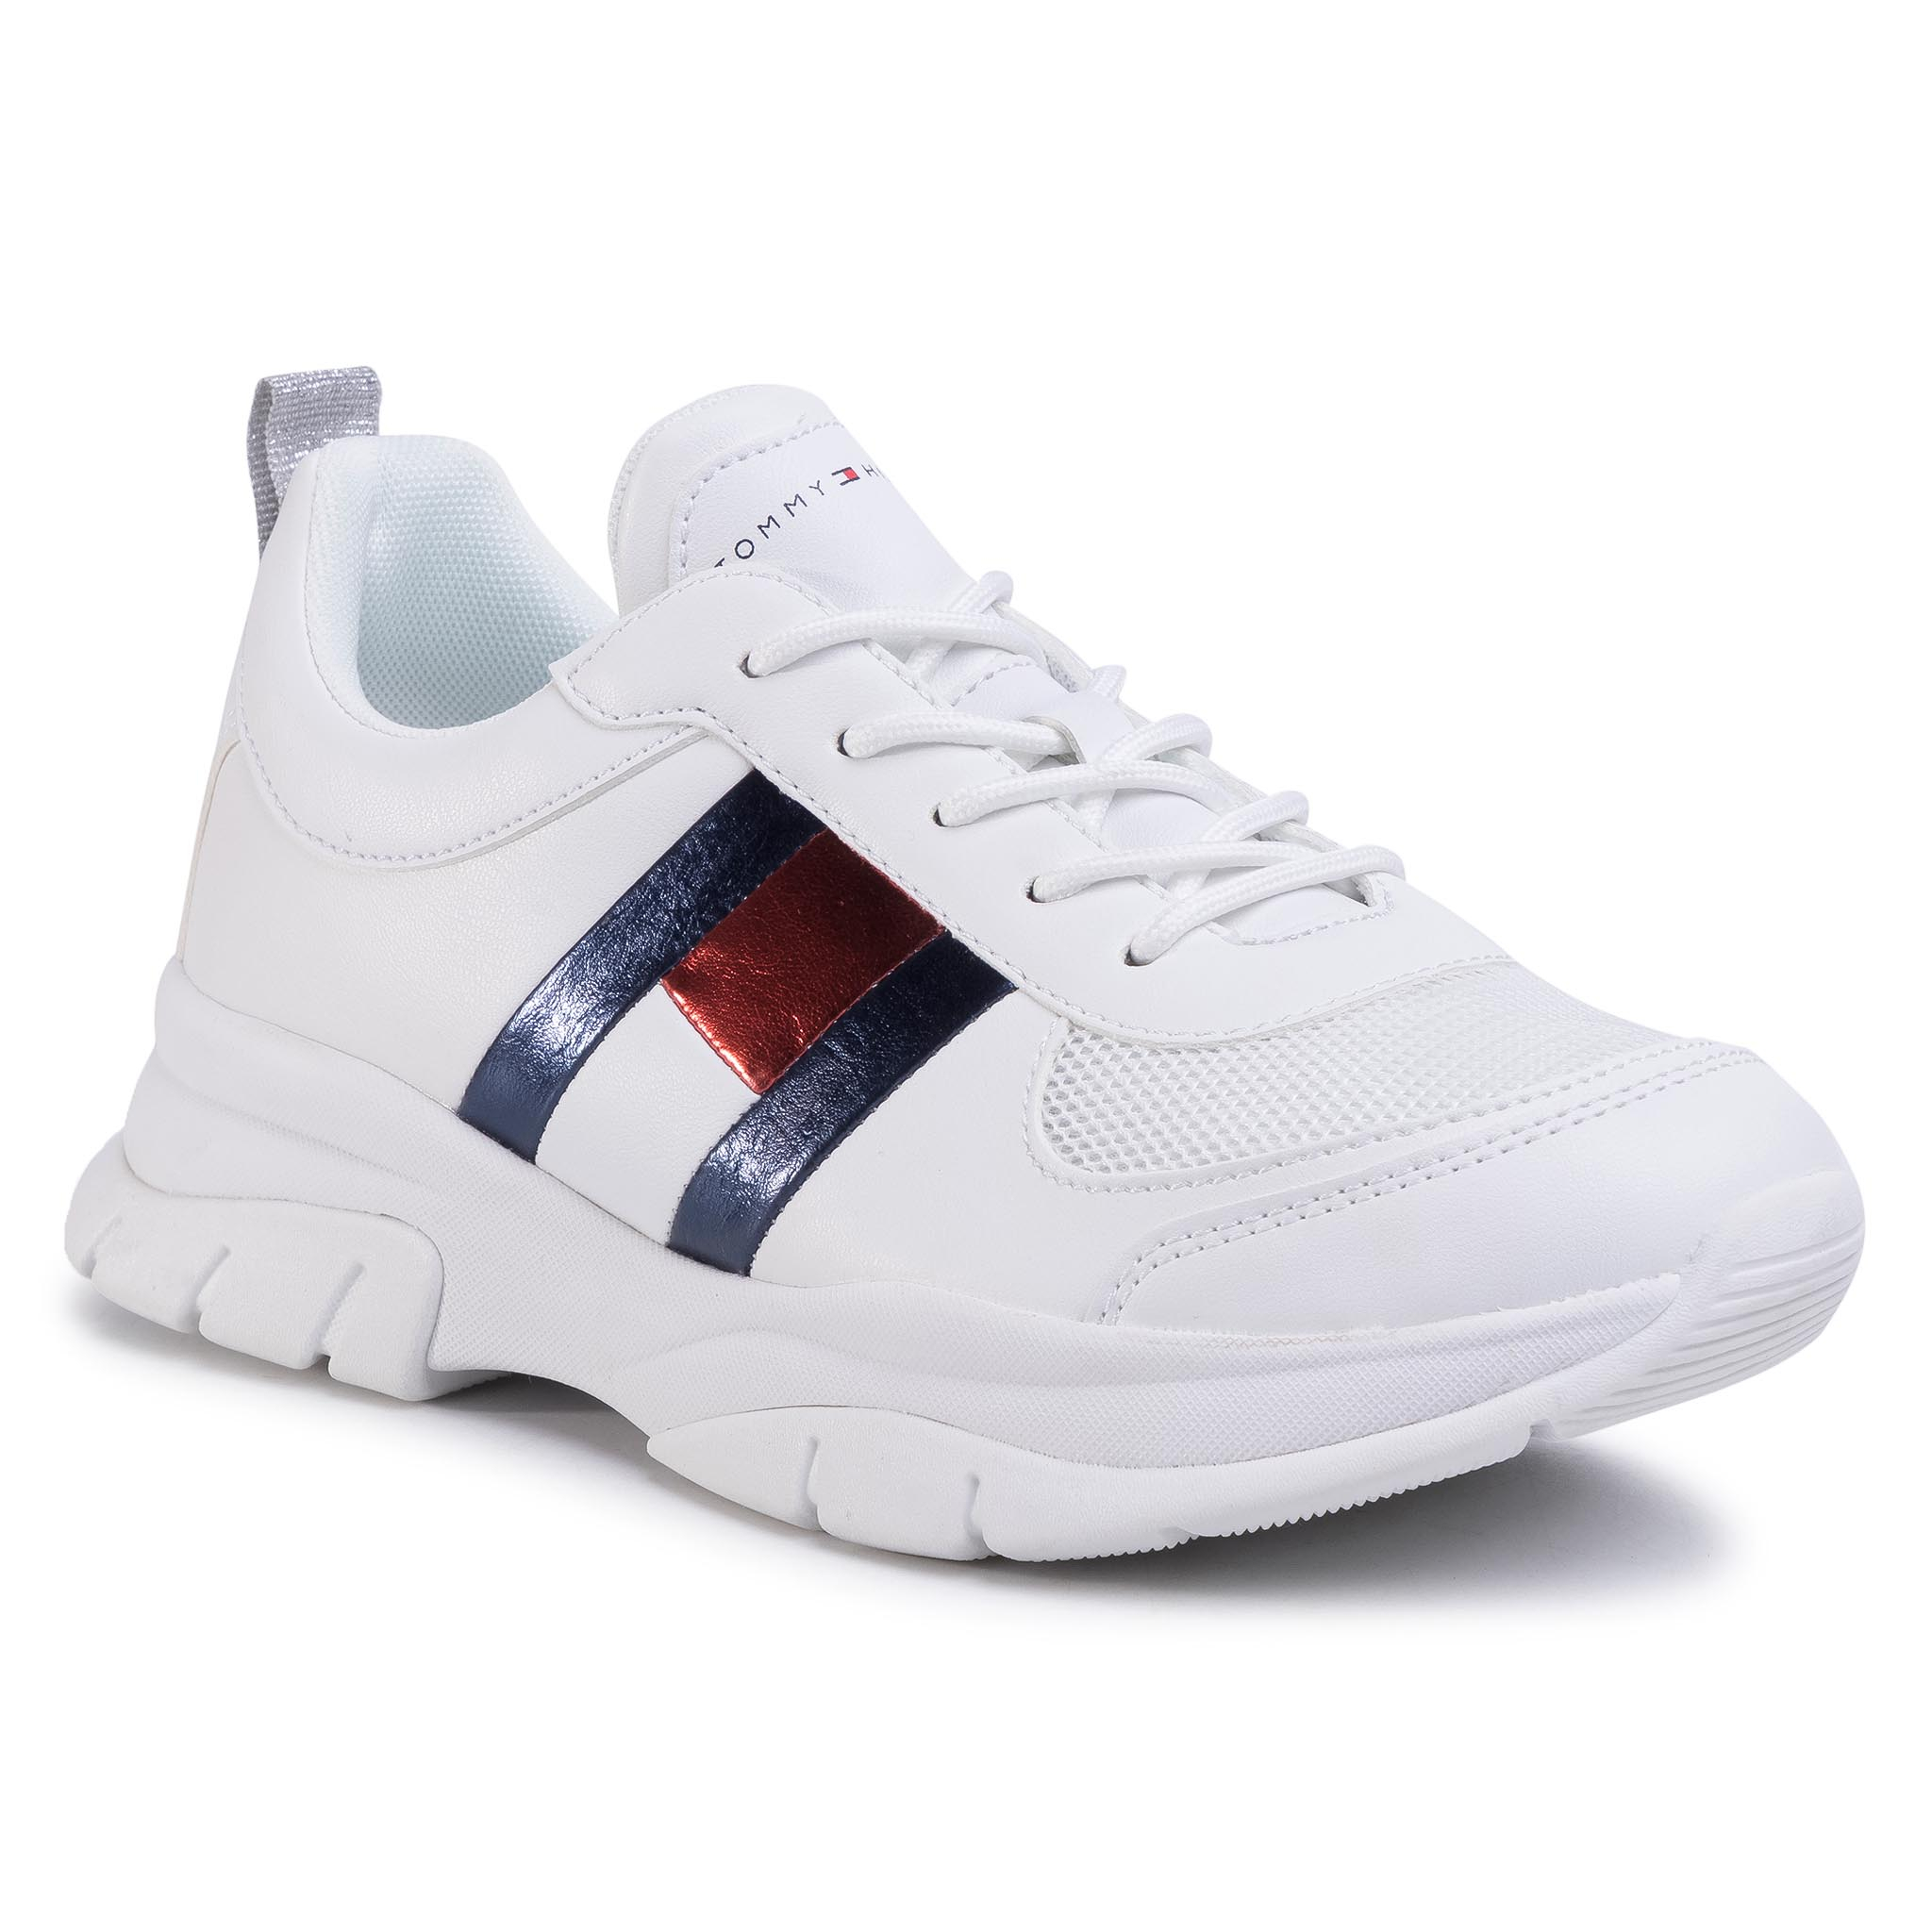 Sneakers TOMMY HILFIGER - Low Cut Lace-Up Sneaker T3A4-30633-0968 D White 100